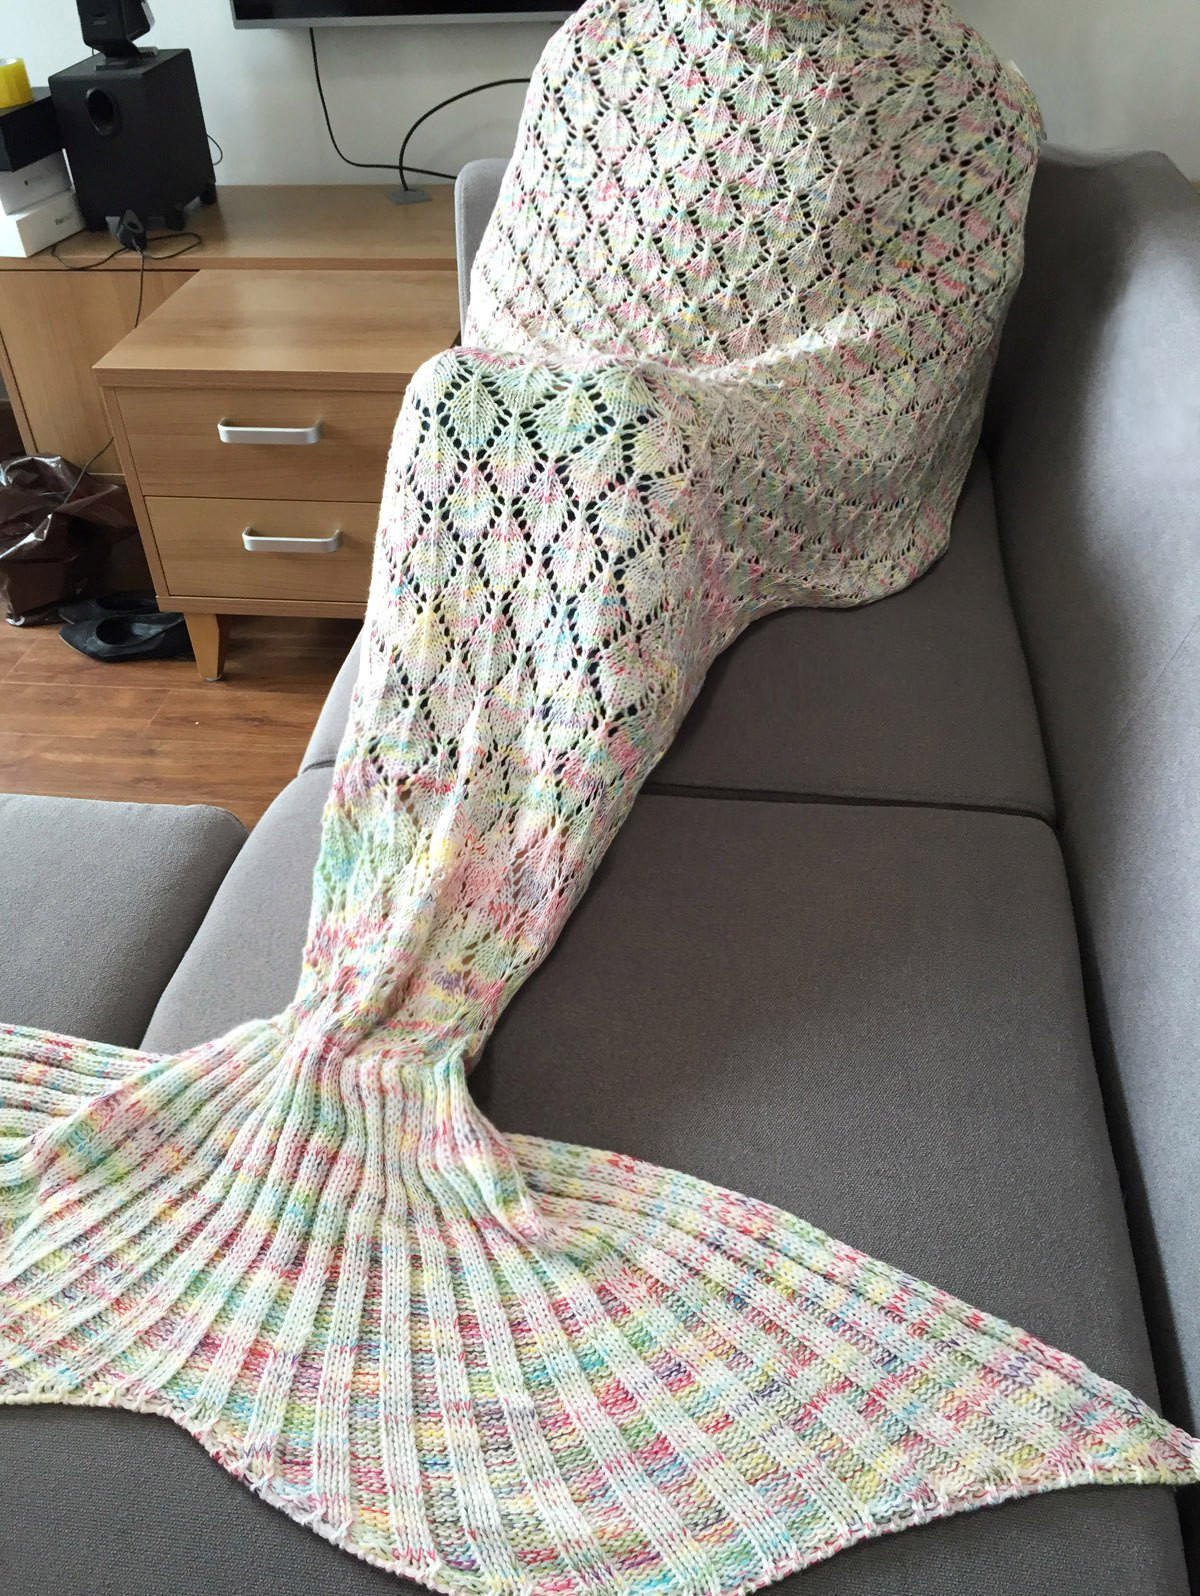 New Stylish Colorful Hollow Out Mermaid Tail Design Knitting Knitted Mermaid Blanket Of Great 41 Images Knitted Mermaid Blanket